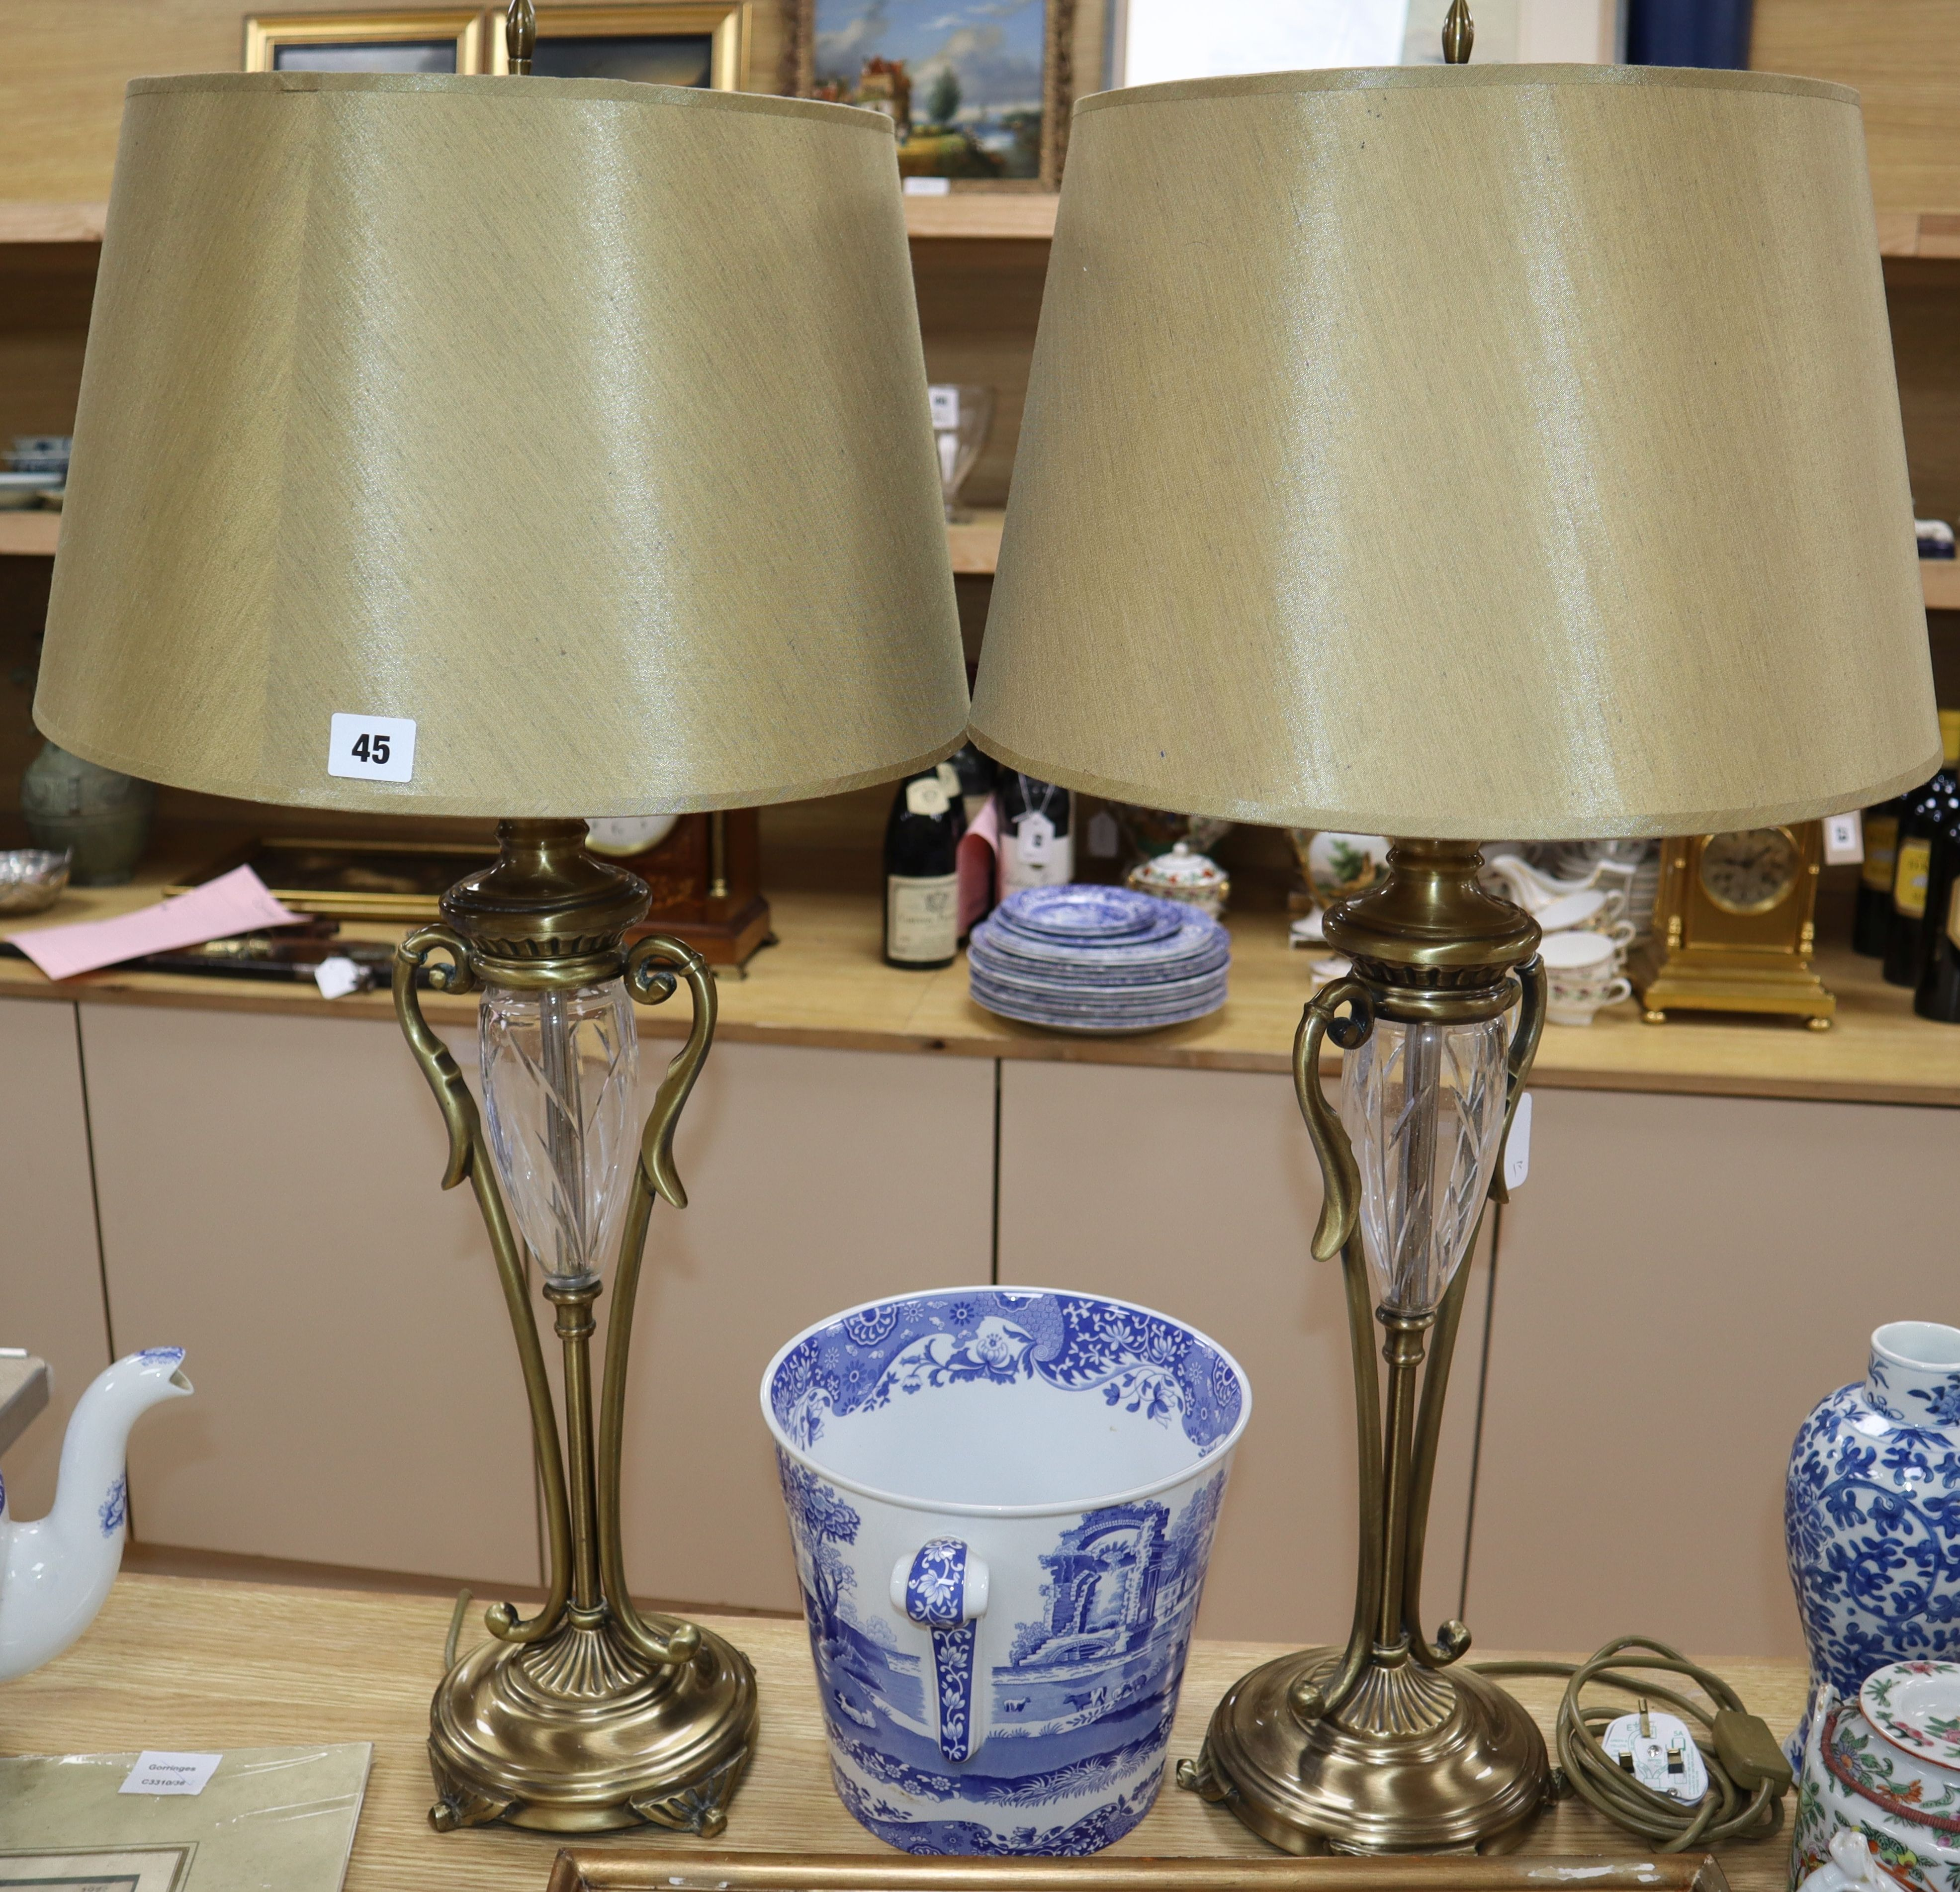 Lot 45 - A pair of cut glass and brass lamps with shades